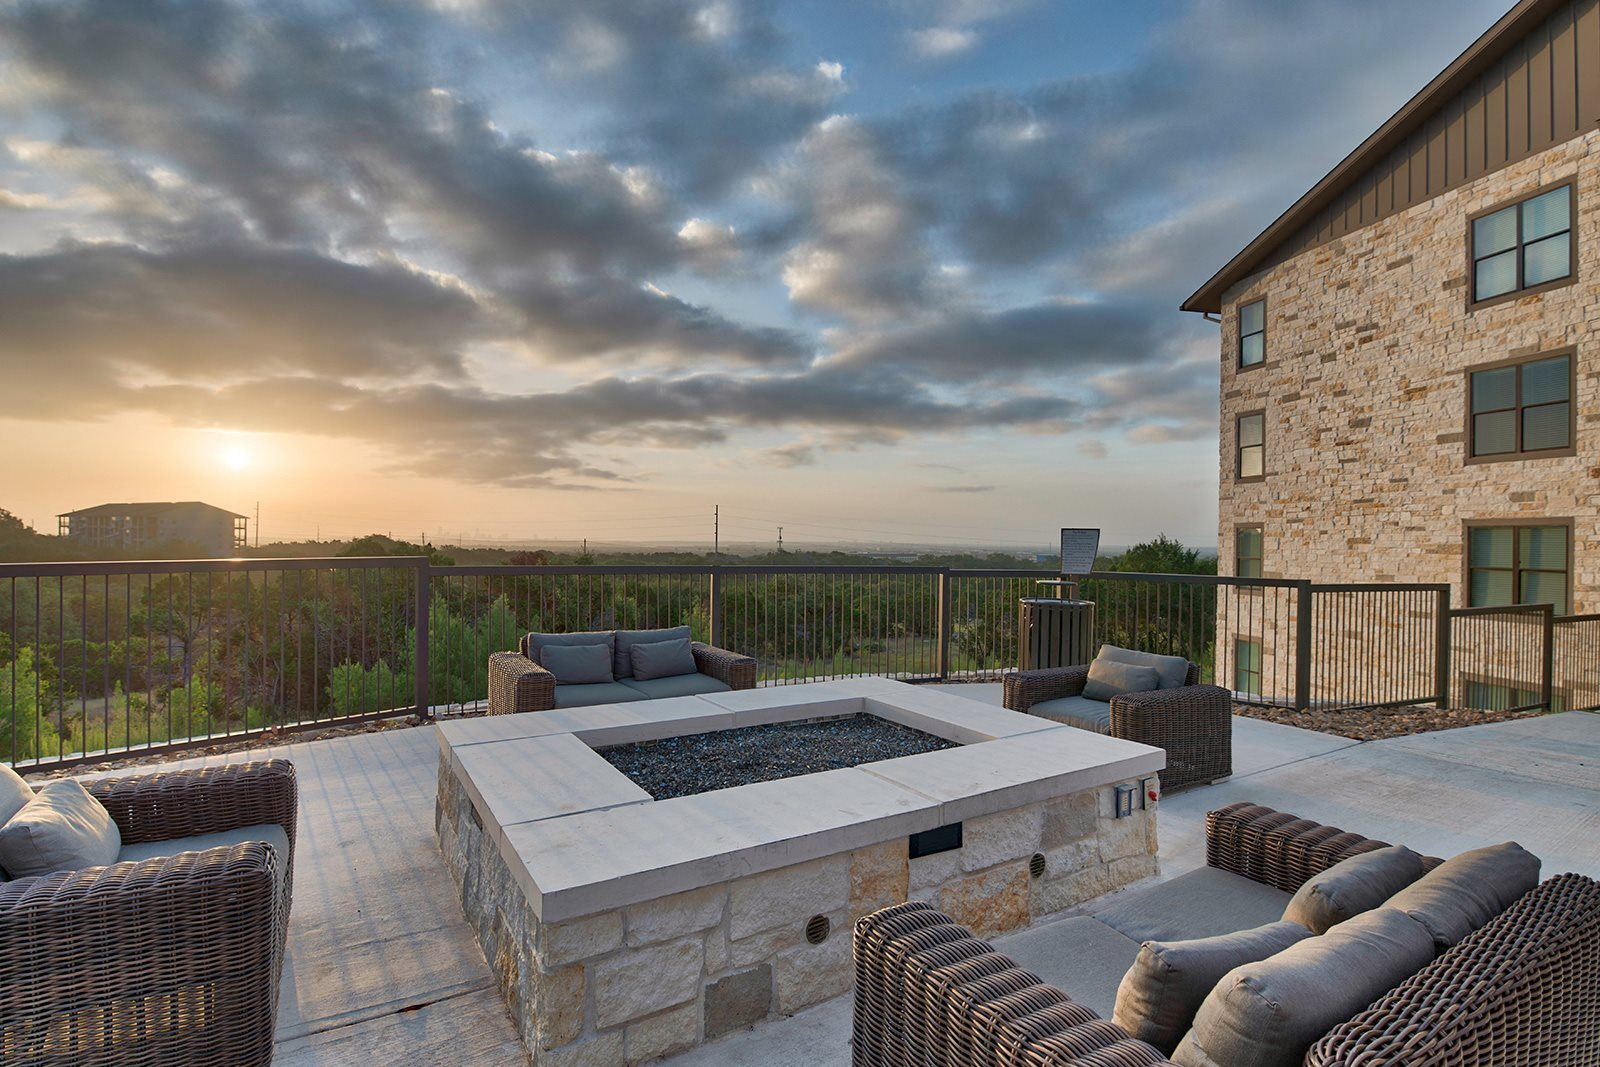 Relaxing Outdoor Lounge Area with Fire Pit at Windsor Lantana Hills, 6601 Rialto Blvd, Austin